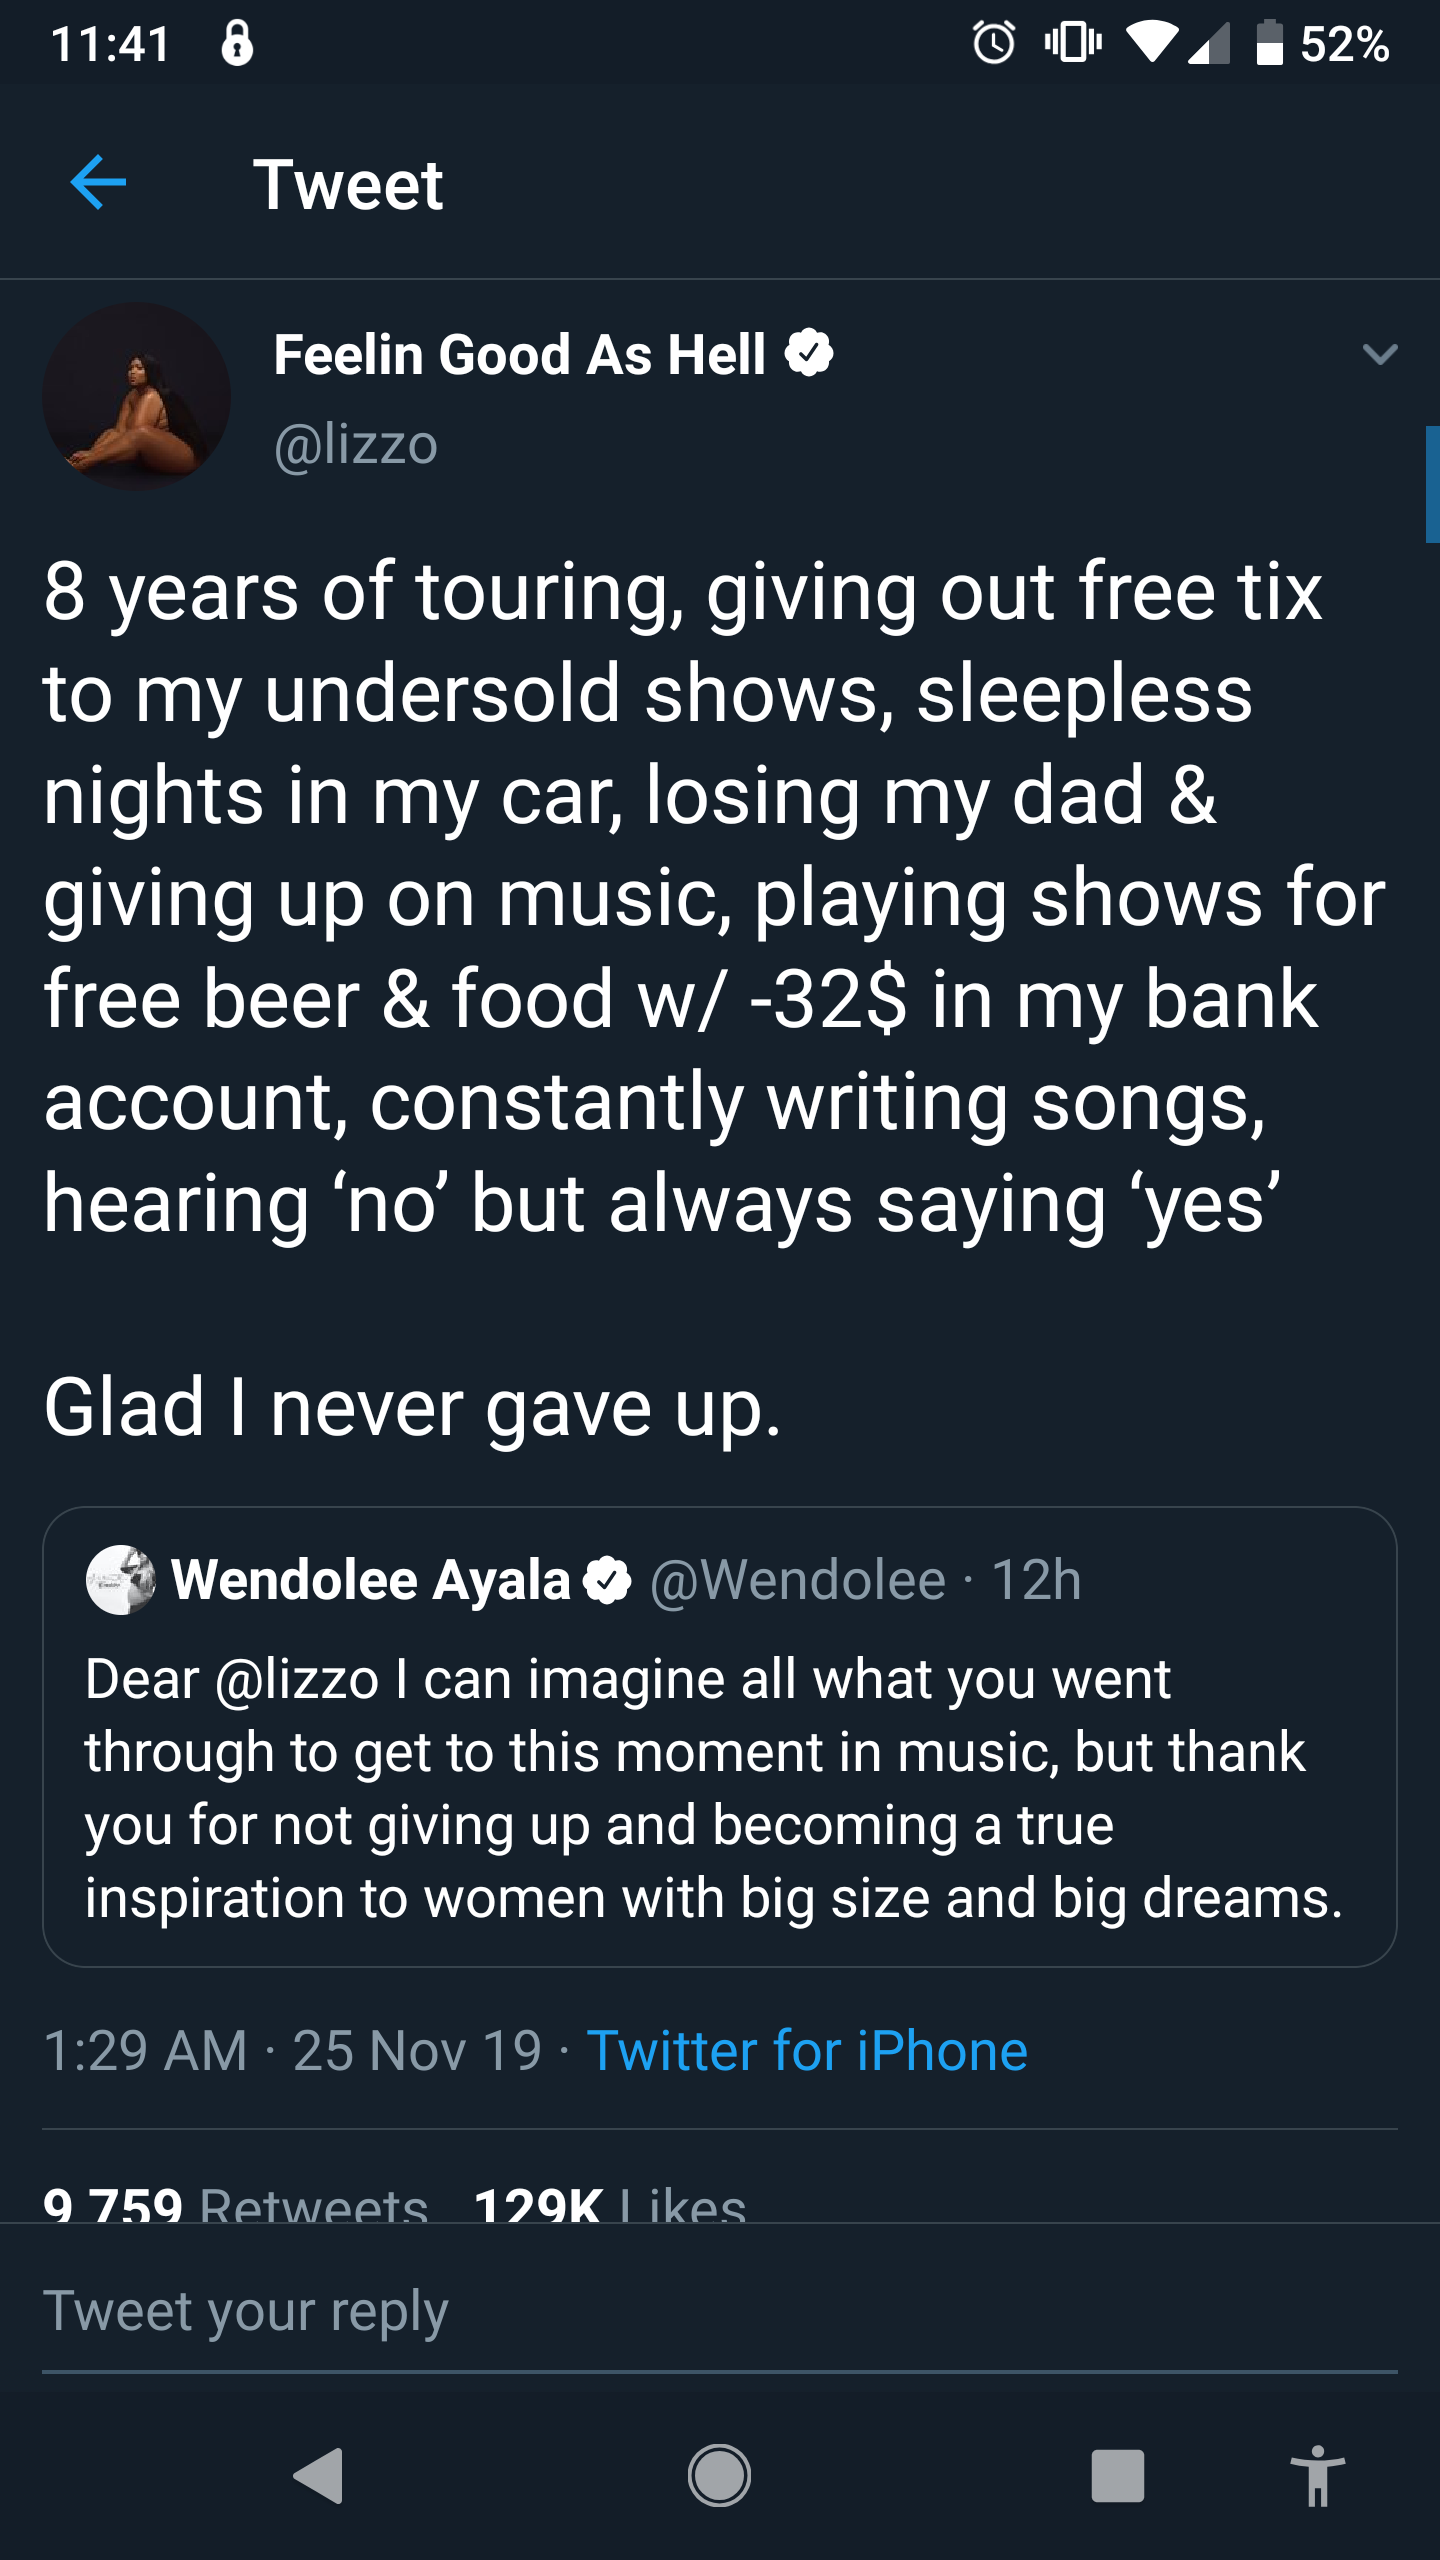 [Image] This tweet from Lizzo.